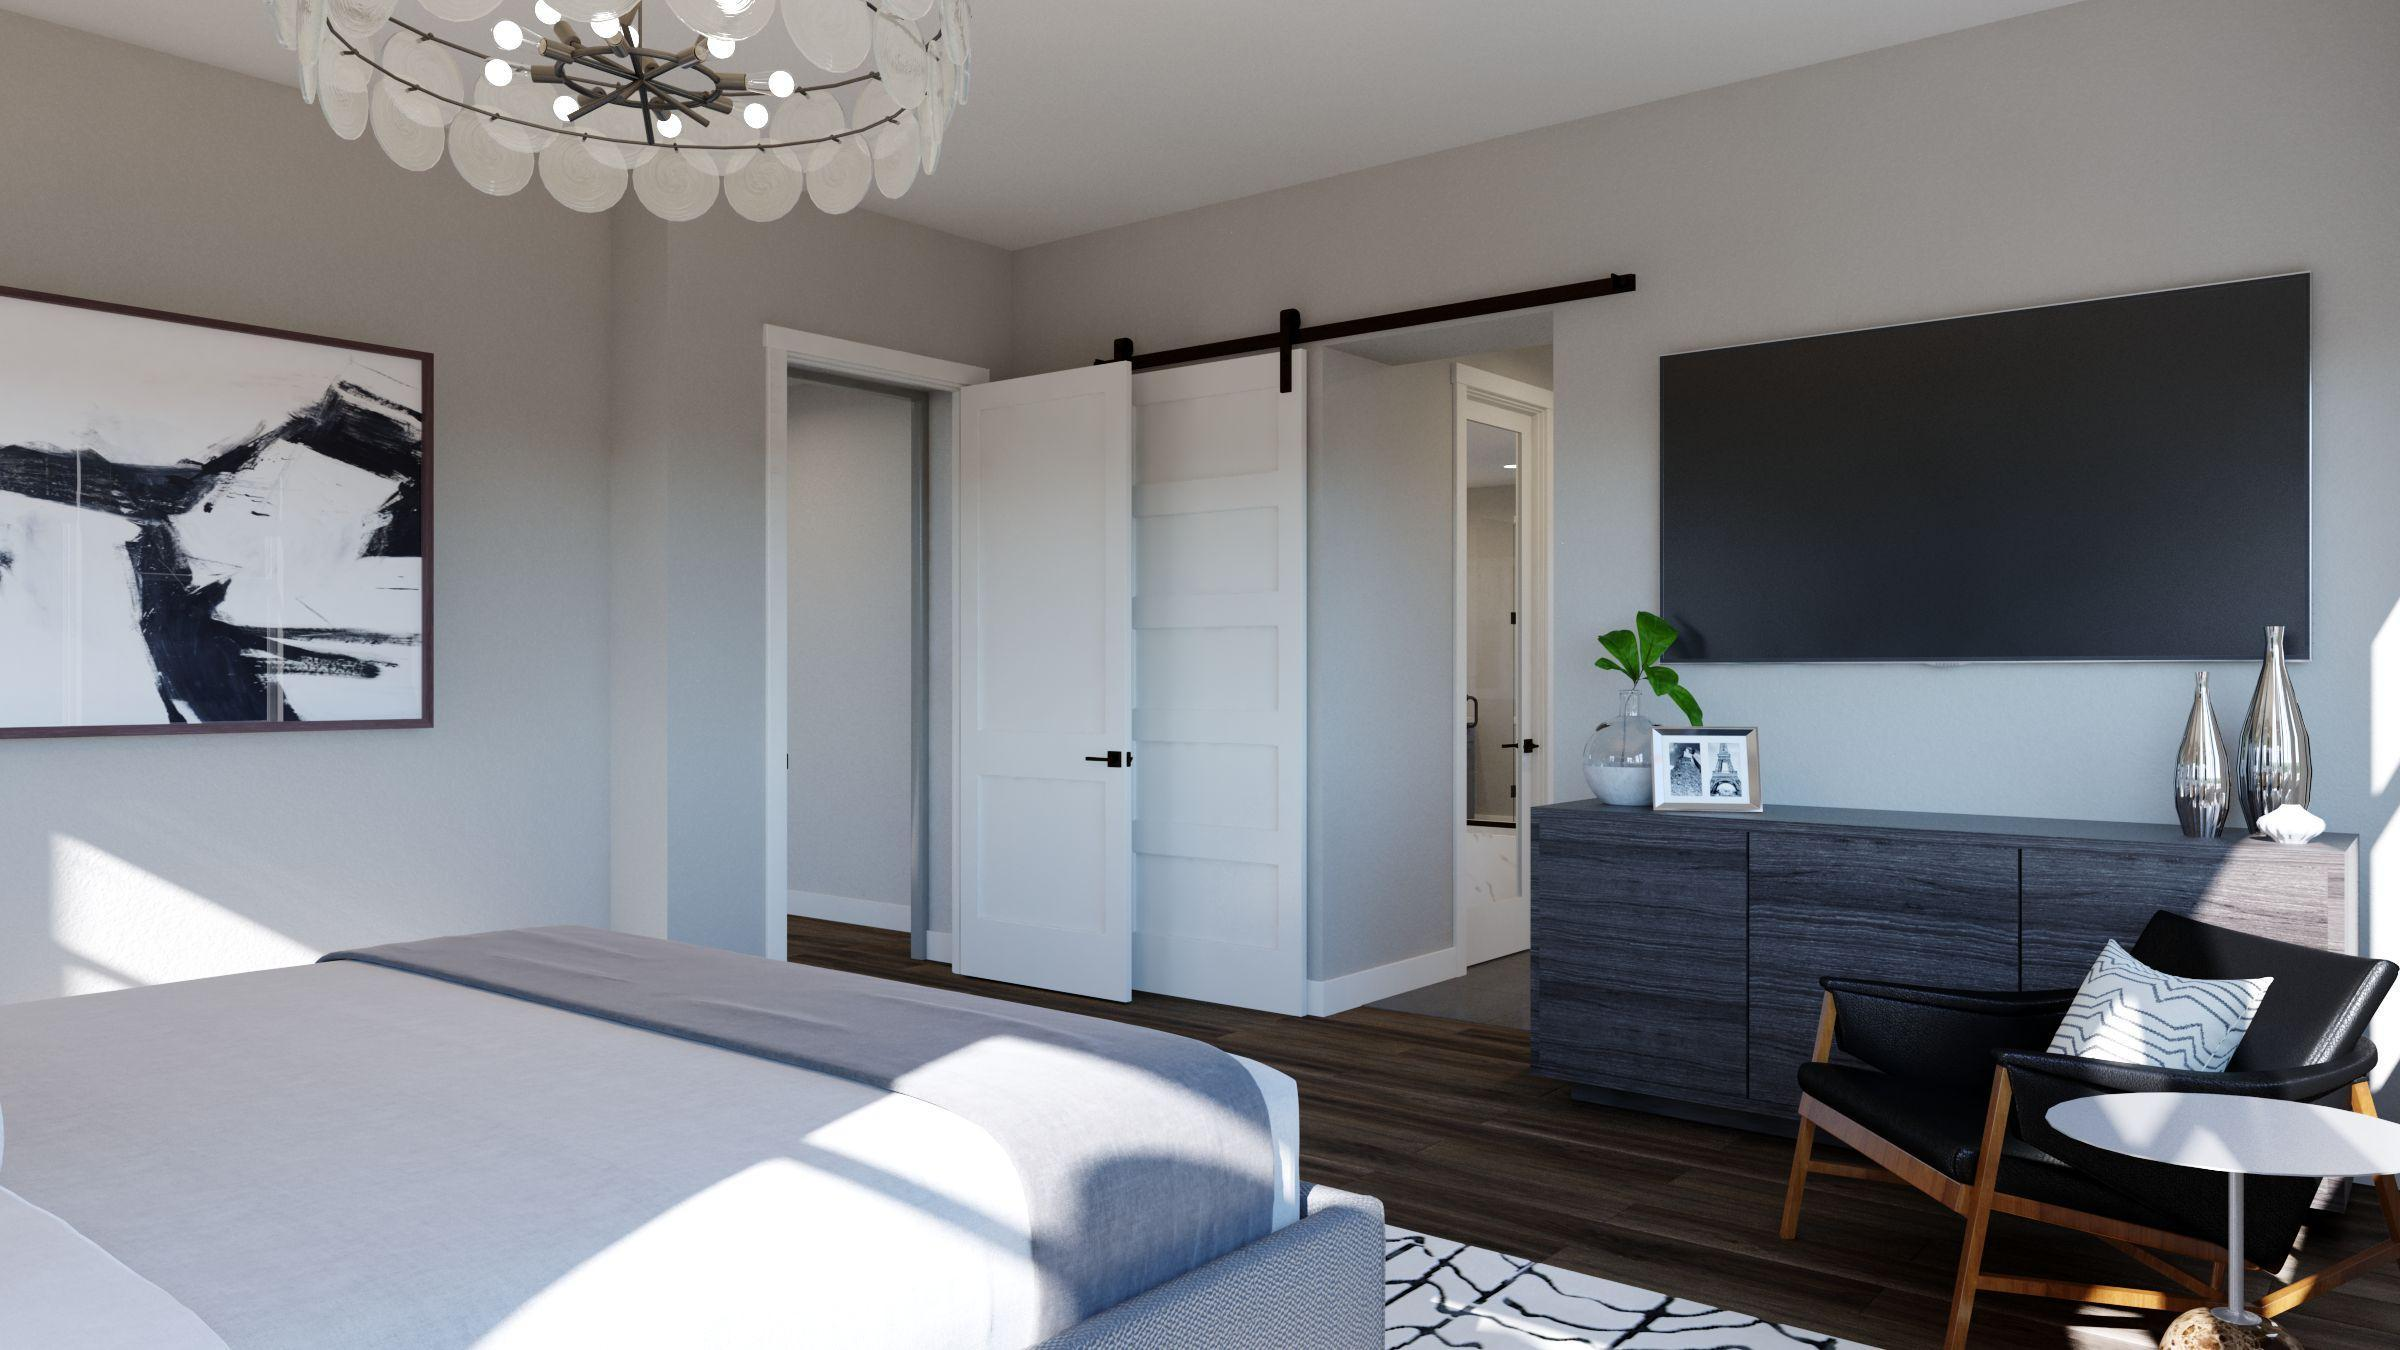 Bedroom featured in the Residence 4 -Harmony By Trumark Homes in San Jose, CA